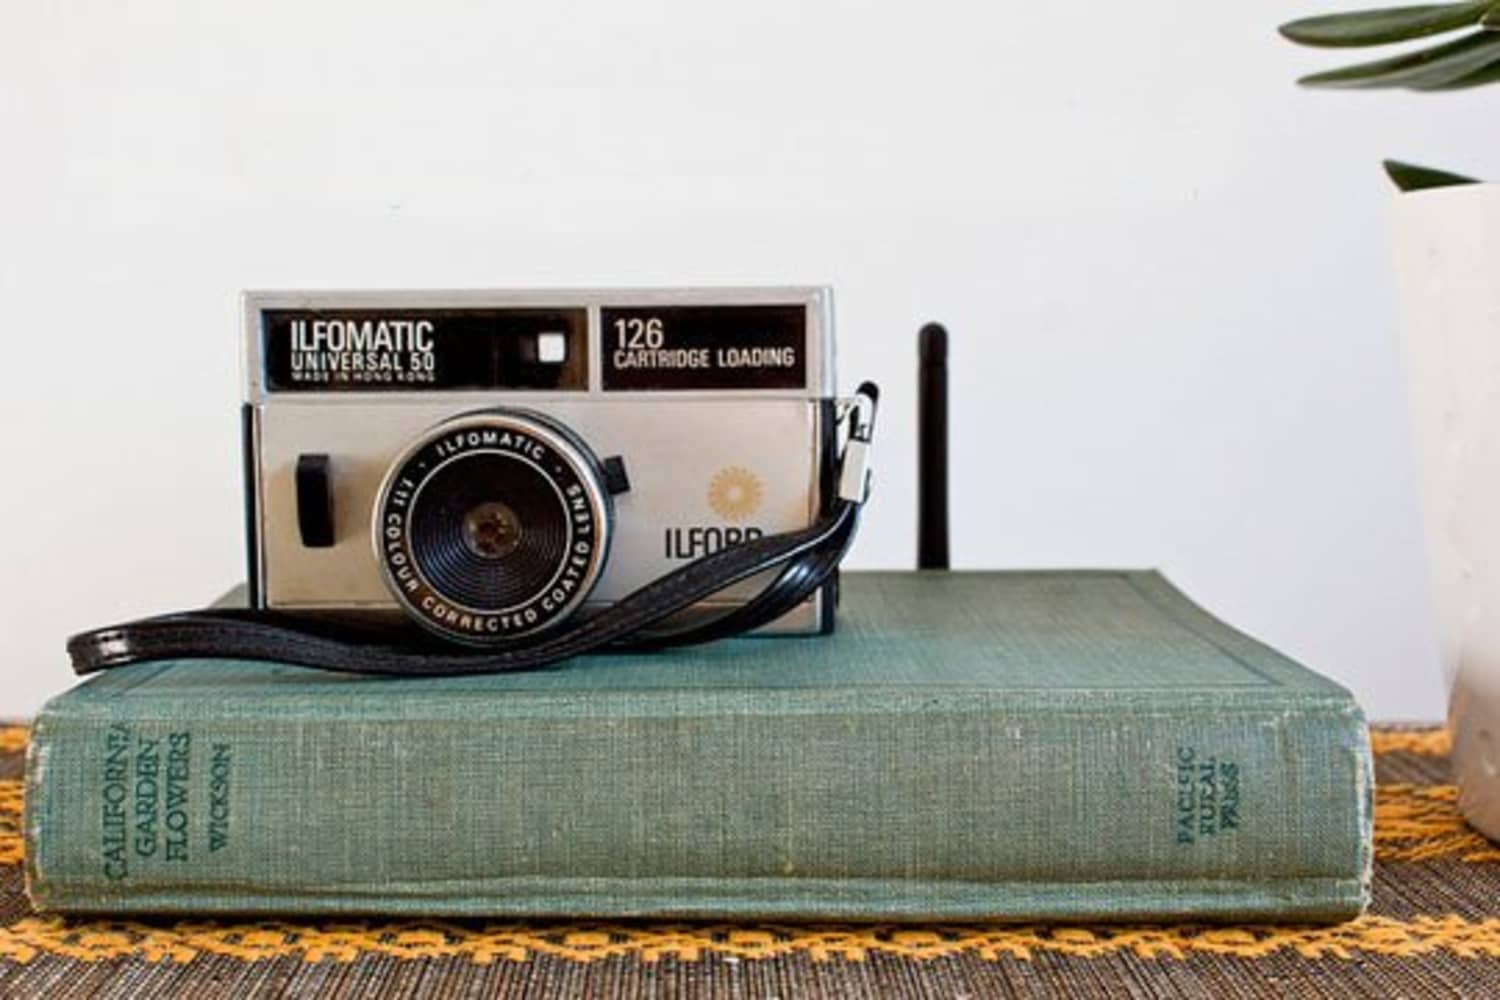 How To Make a Book Cover Disguise For Your Wireless Router